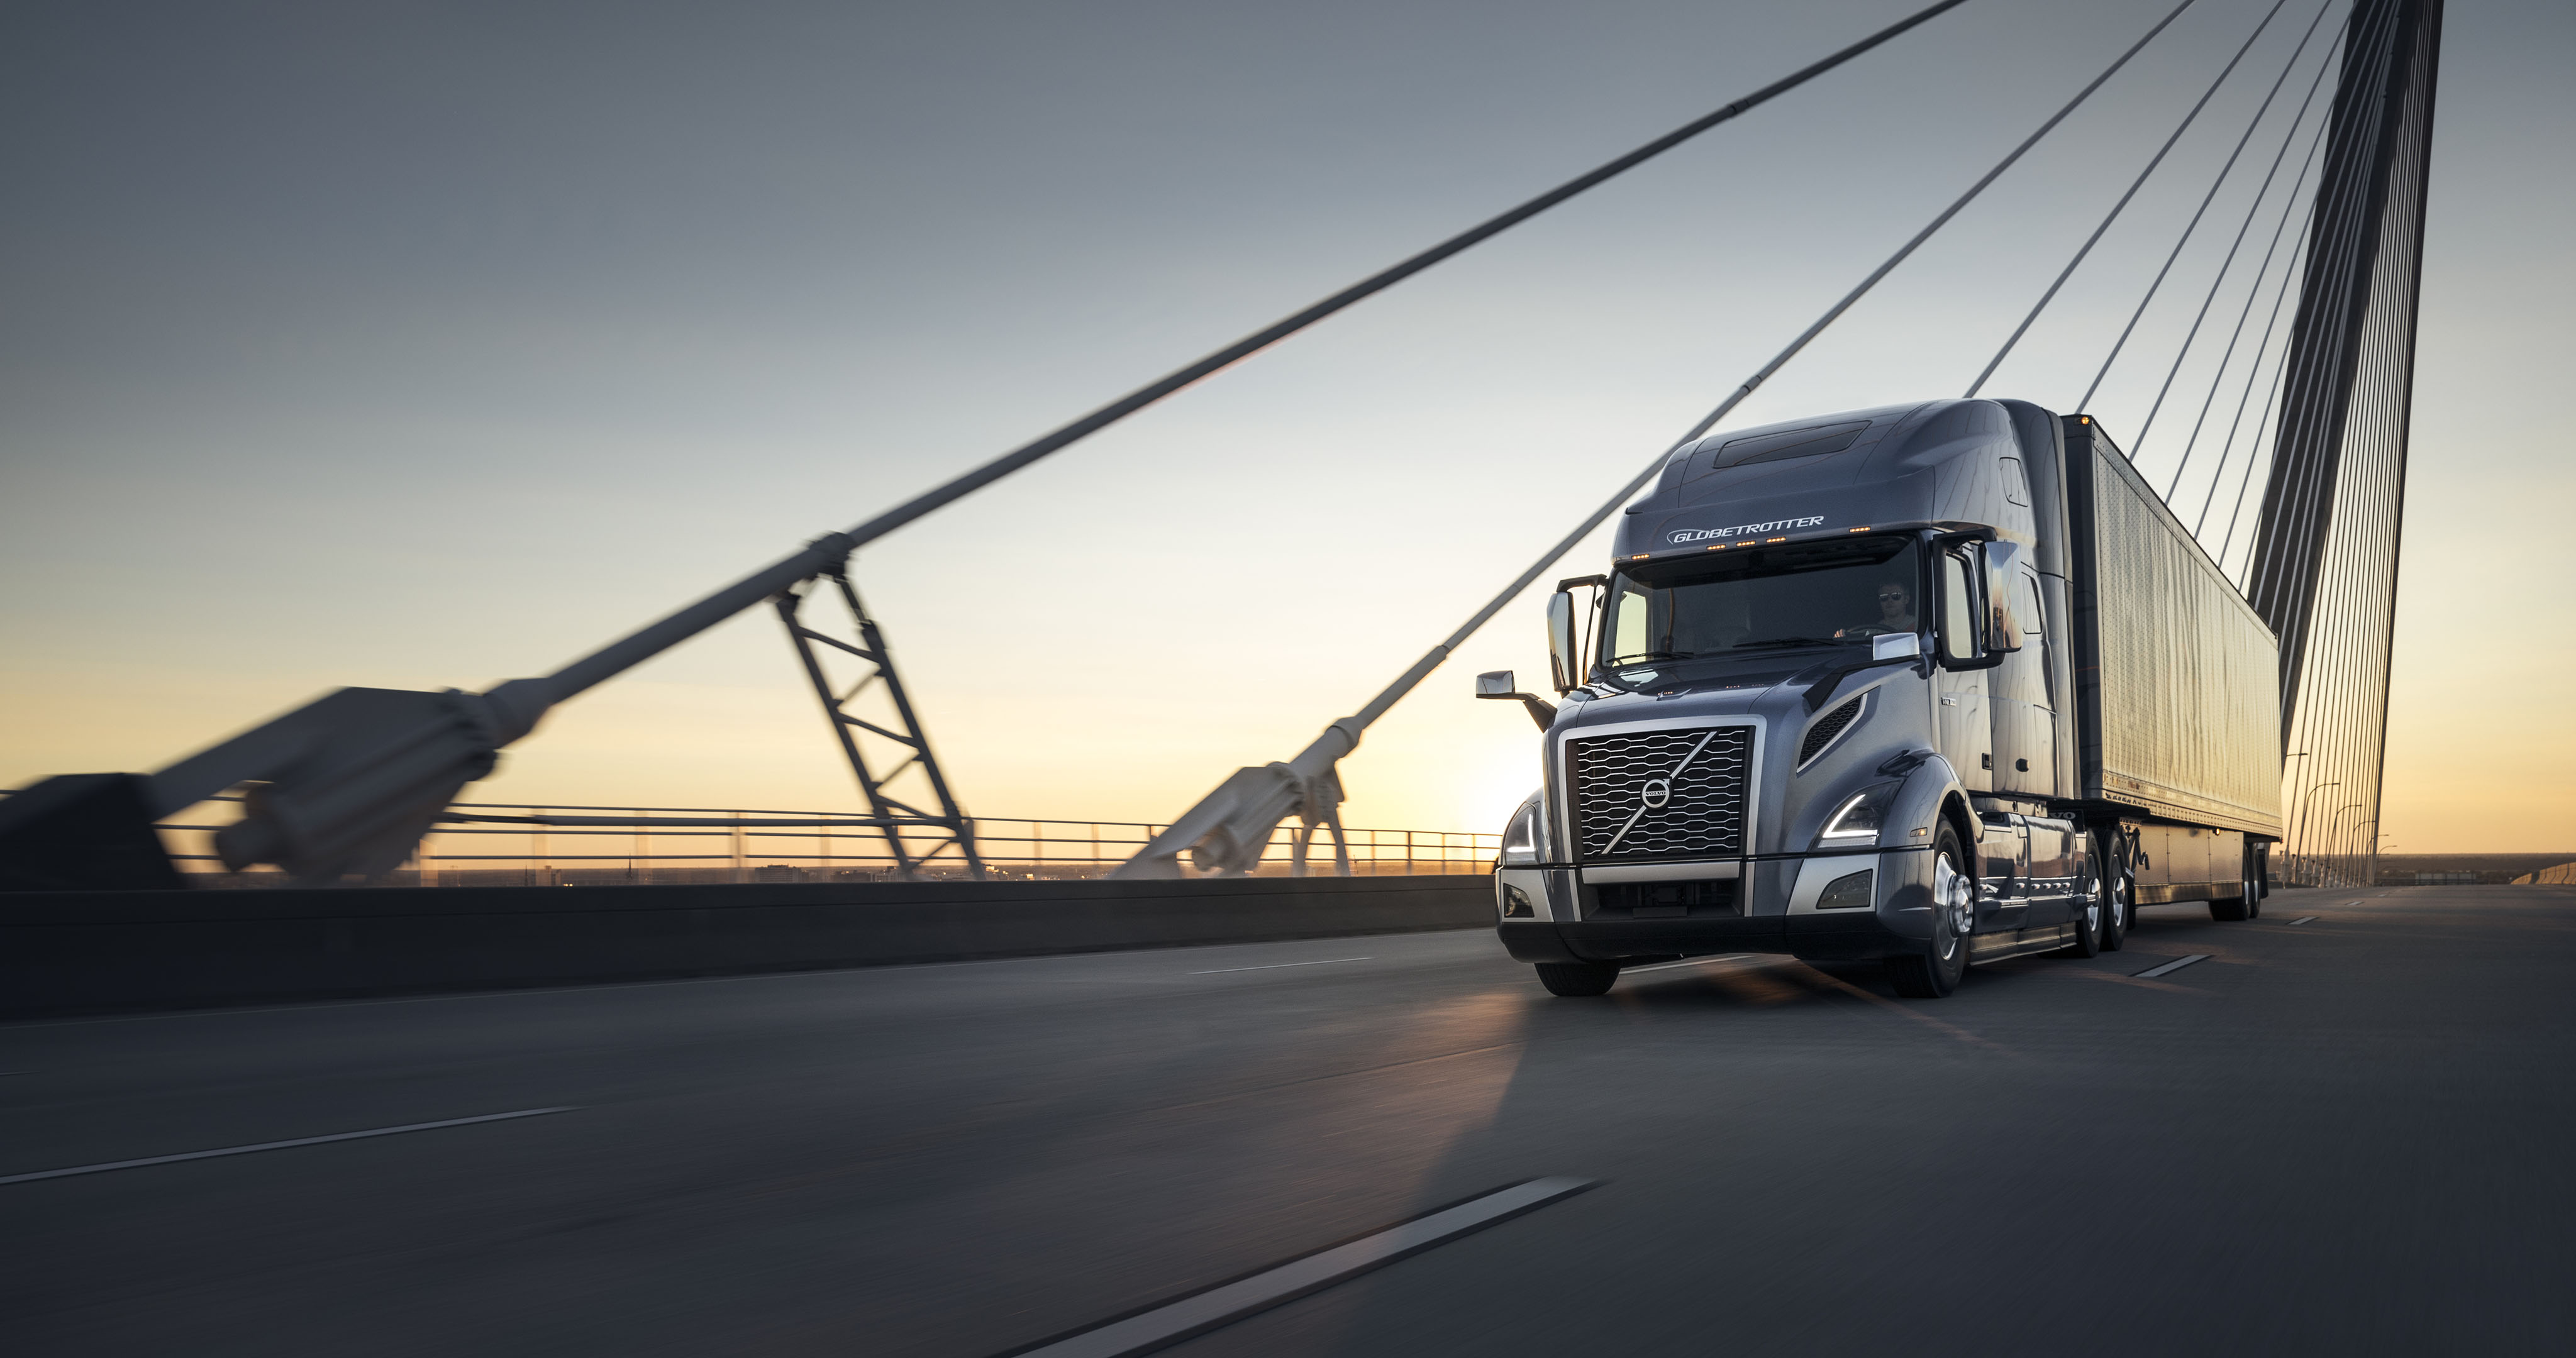 rob on at image south arrival davies and dealership the trucks dealers sinclair blair truck featured volvo fh central editorial review